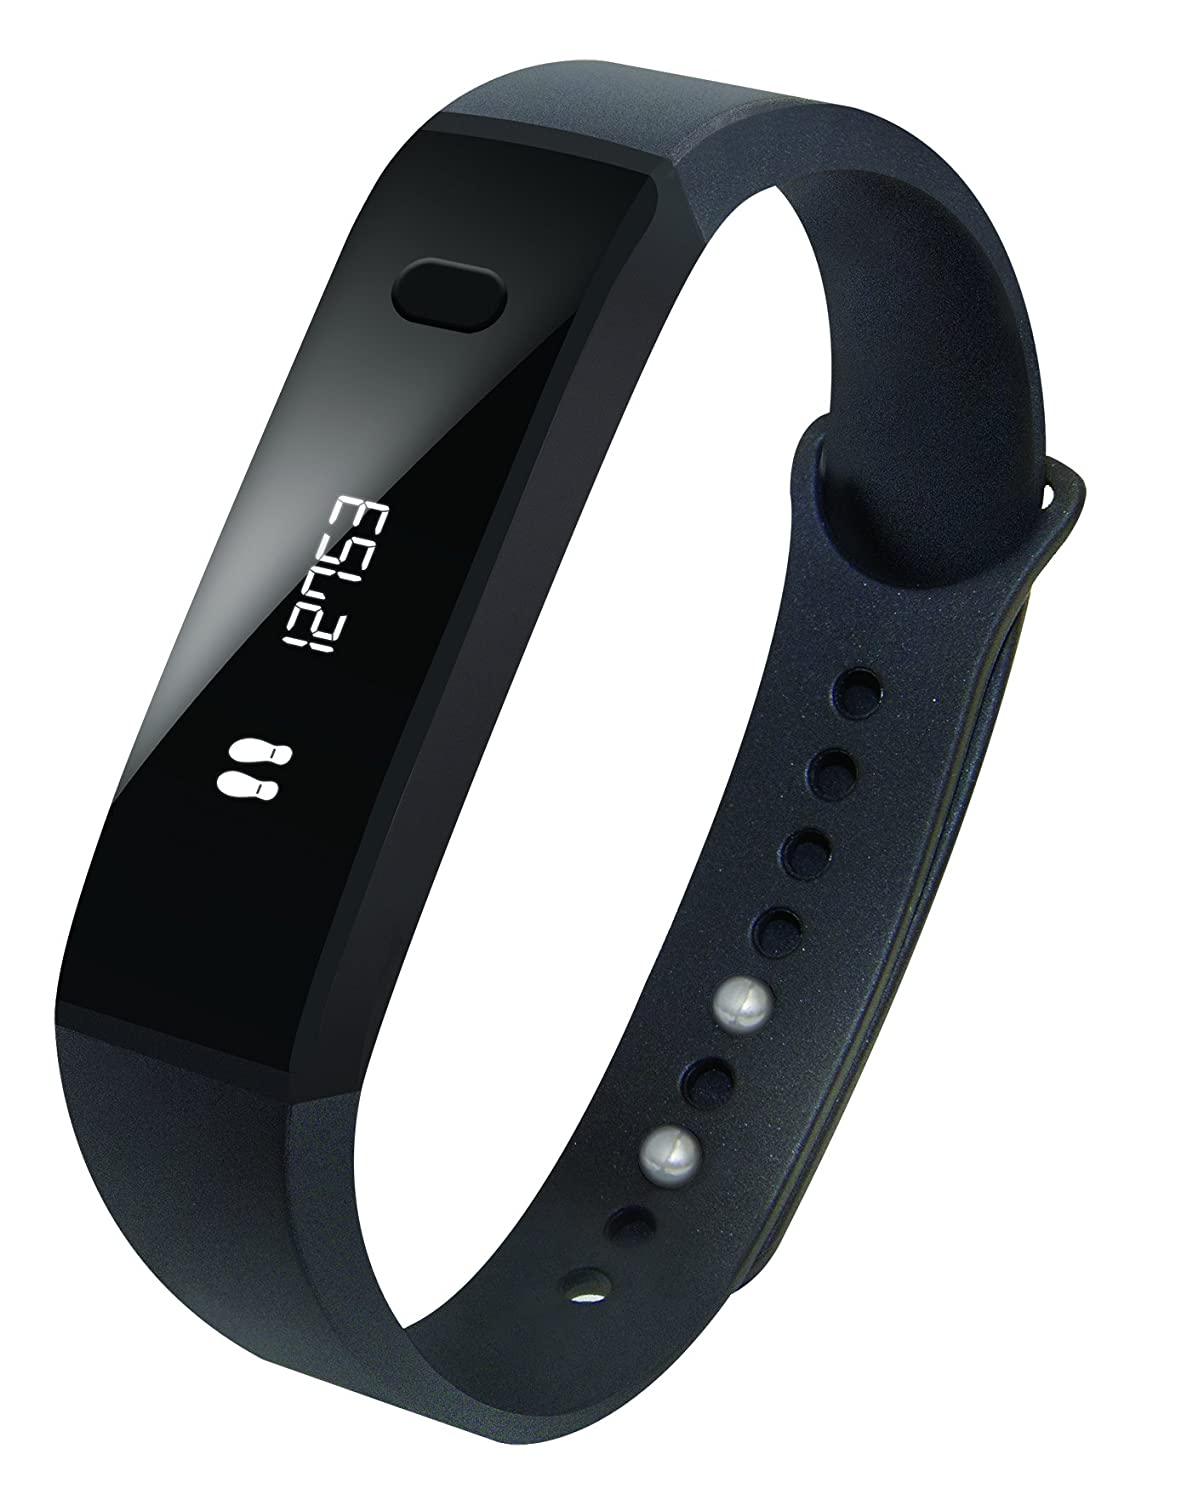 Fundamental Vida Banda (Actividad + Dormir Tracker) Pivotal Activity + Sleep Band